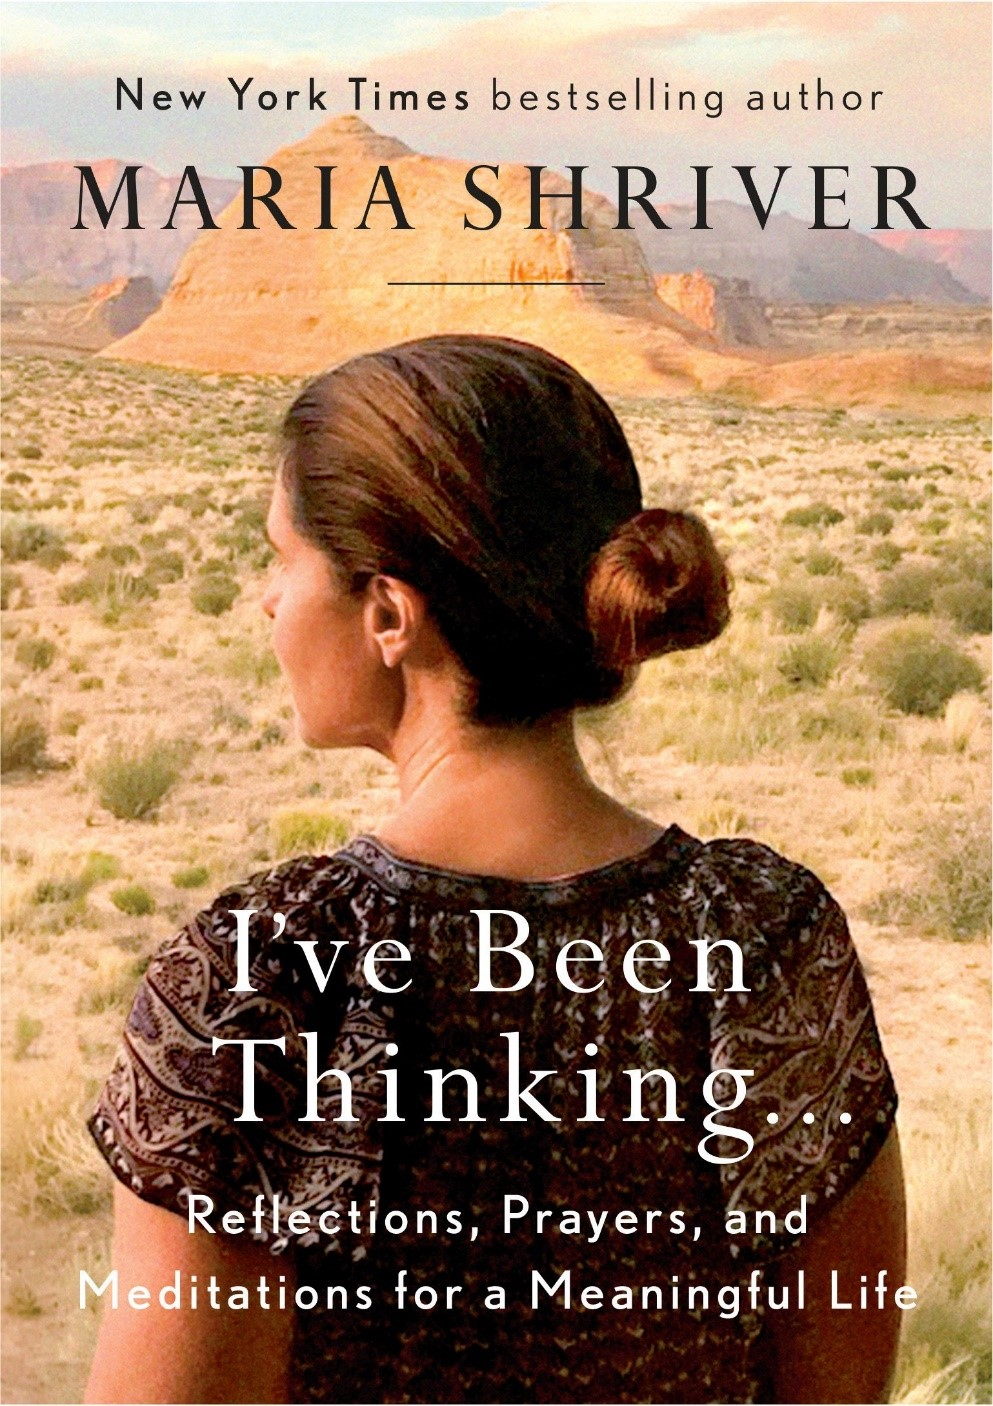 Cover of I've Been Thinking. The cover shows a photograph of Maria Shriver from behind, facing to her left, in front of a backdrop of a Southwestern landscape